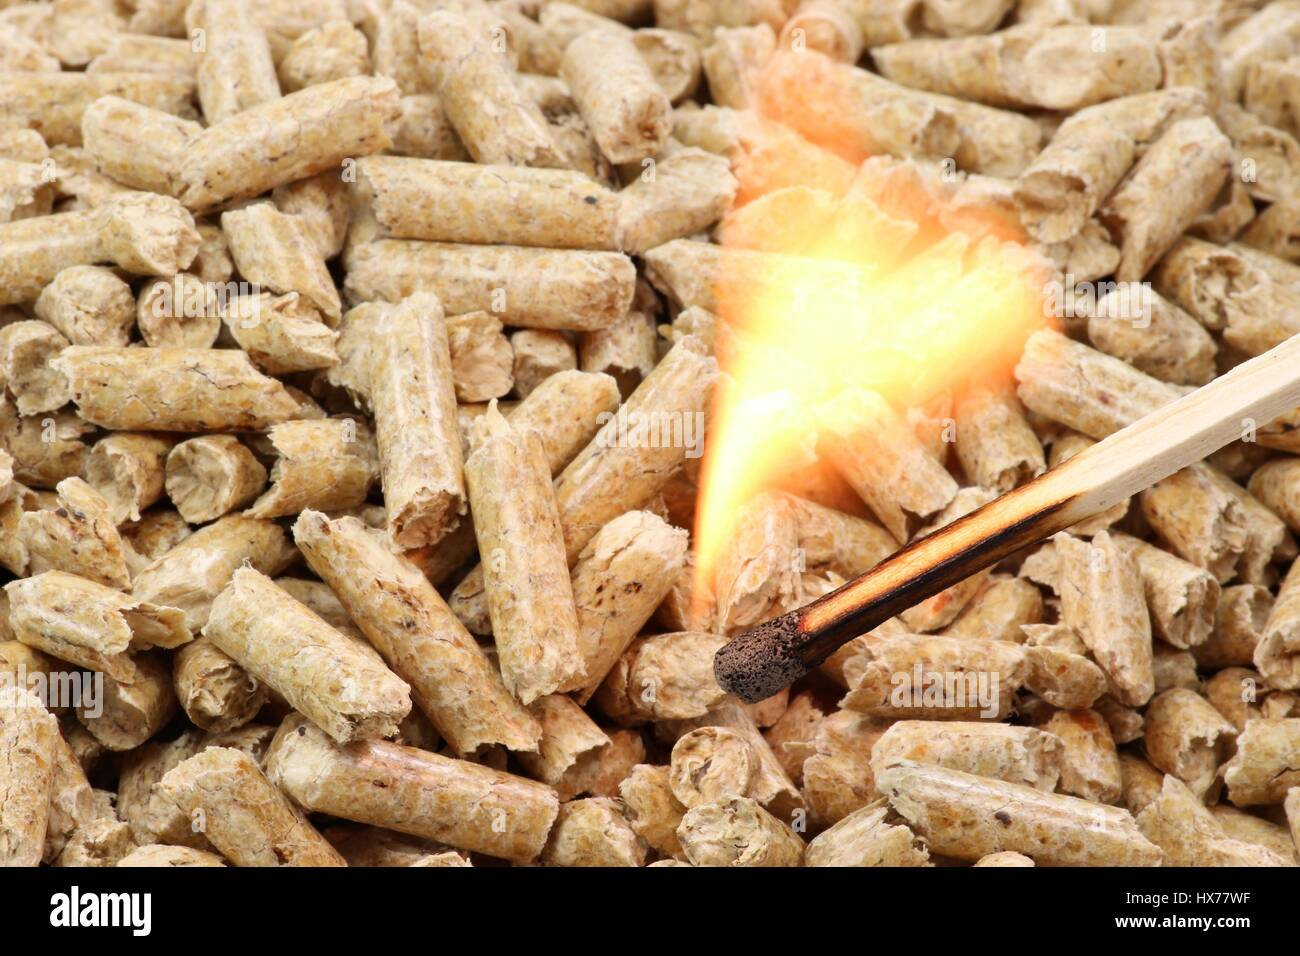 burning matchstick in front of wood pellets - Stock Image